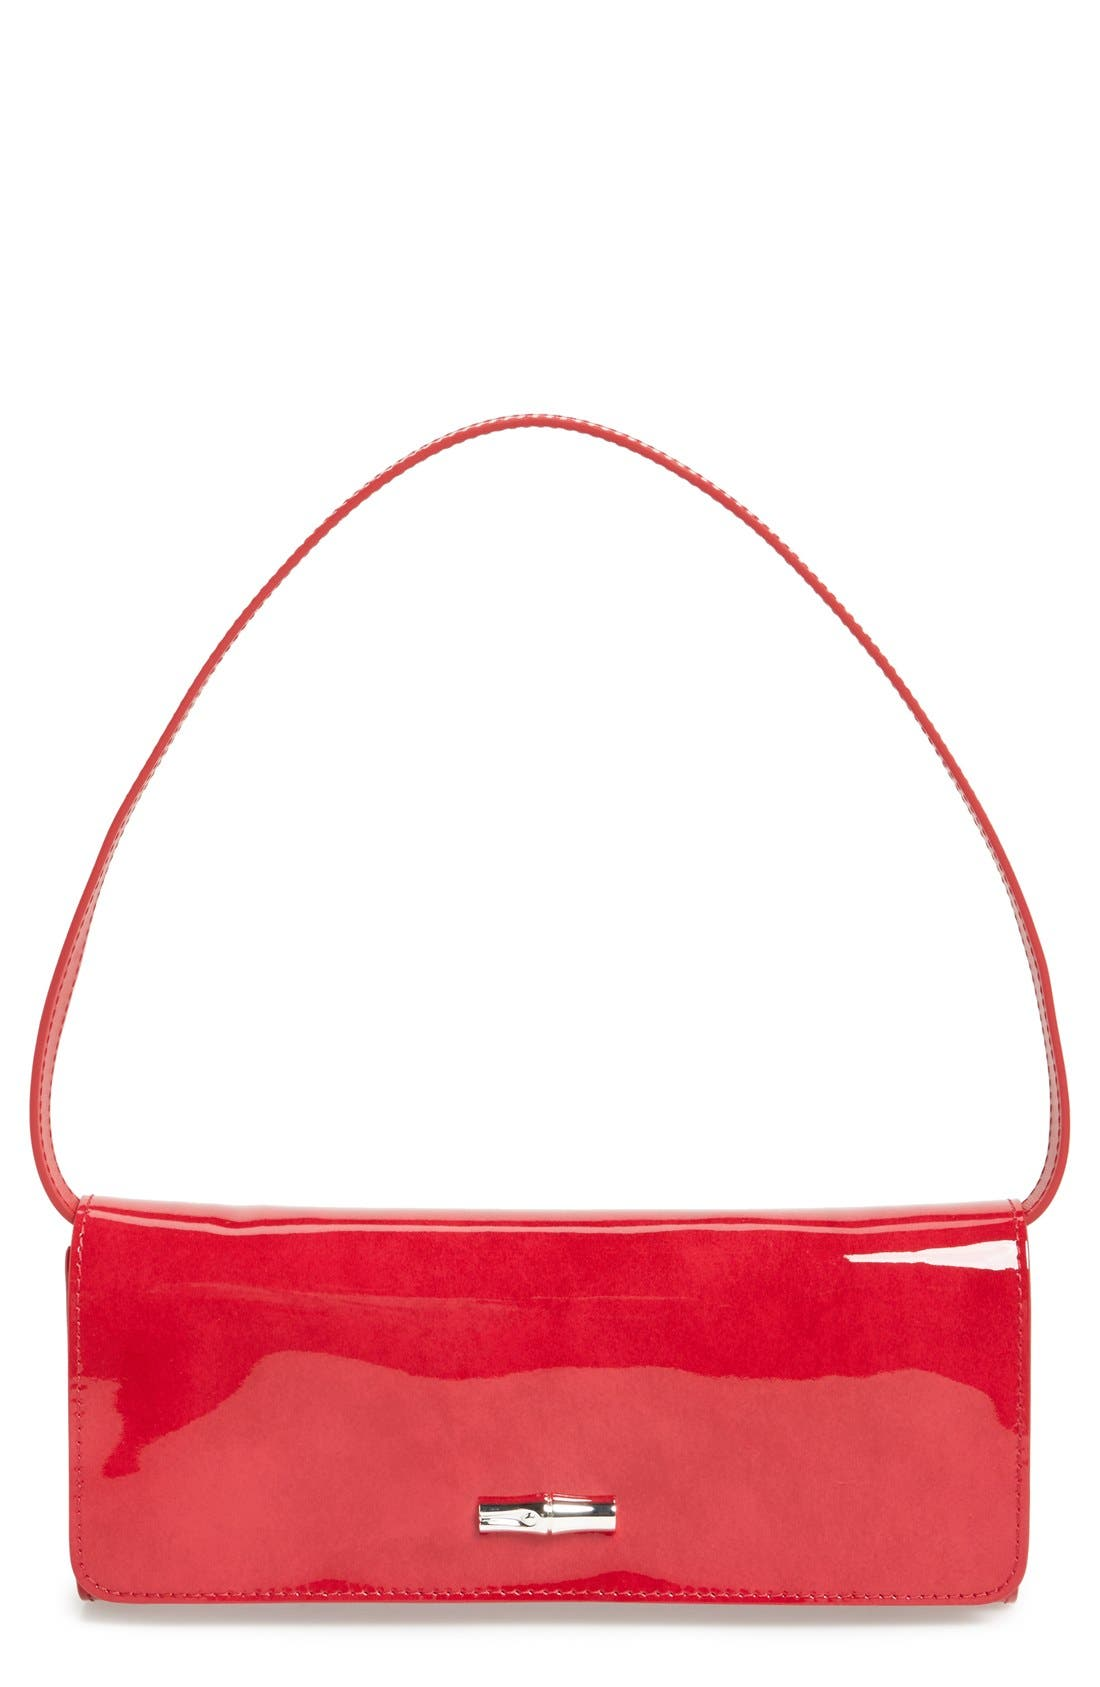 Alternate Image 1 Selected - Longchamp 'Roseau Box' Clutch